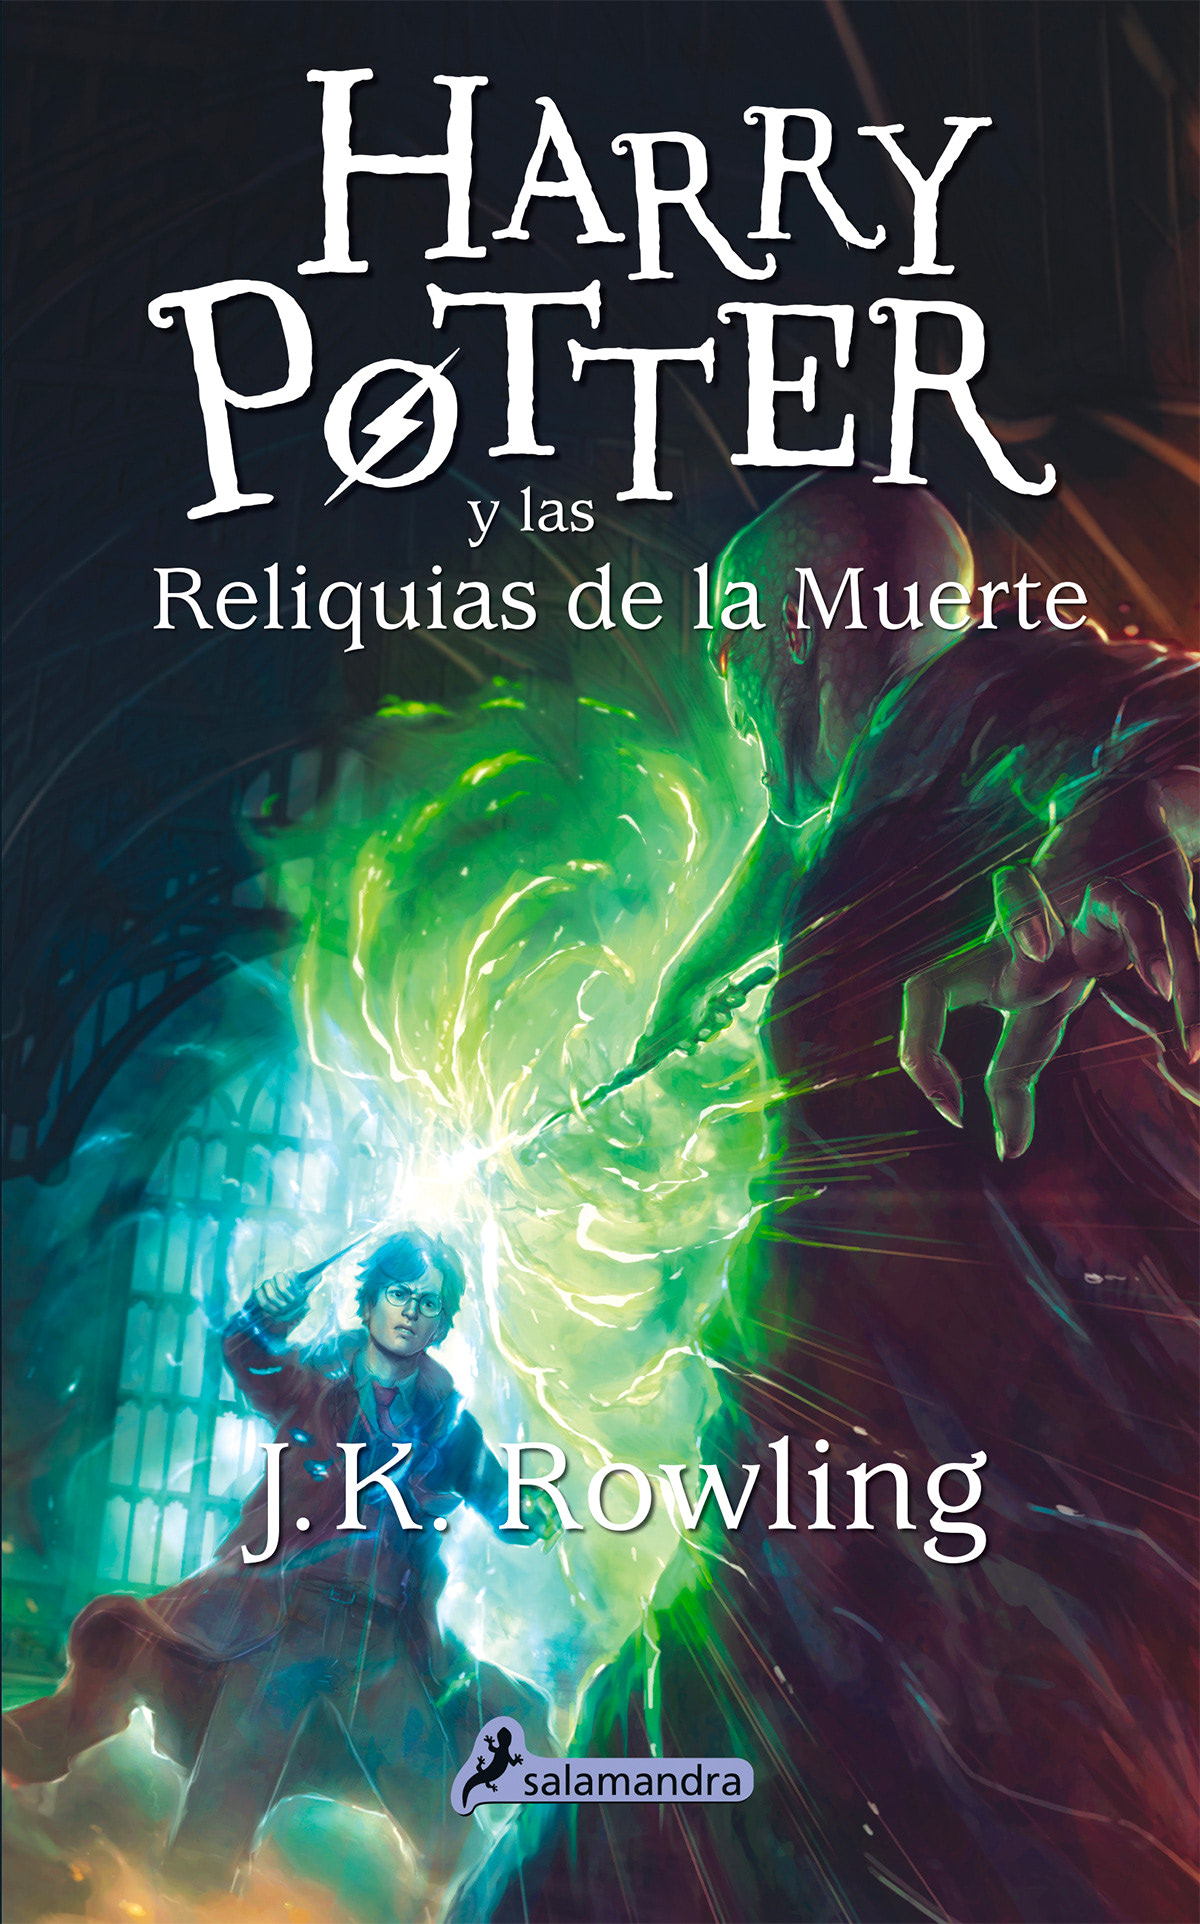 'Deathly Hallows' Spanish anniversary edition